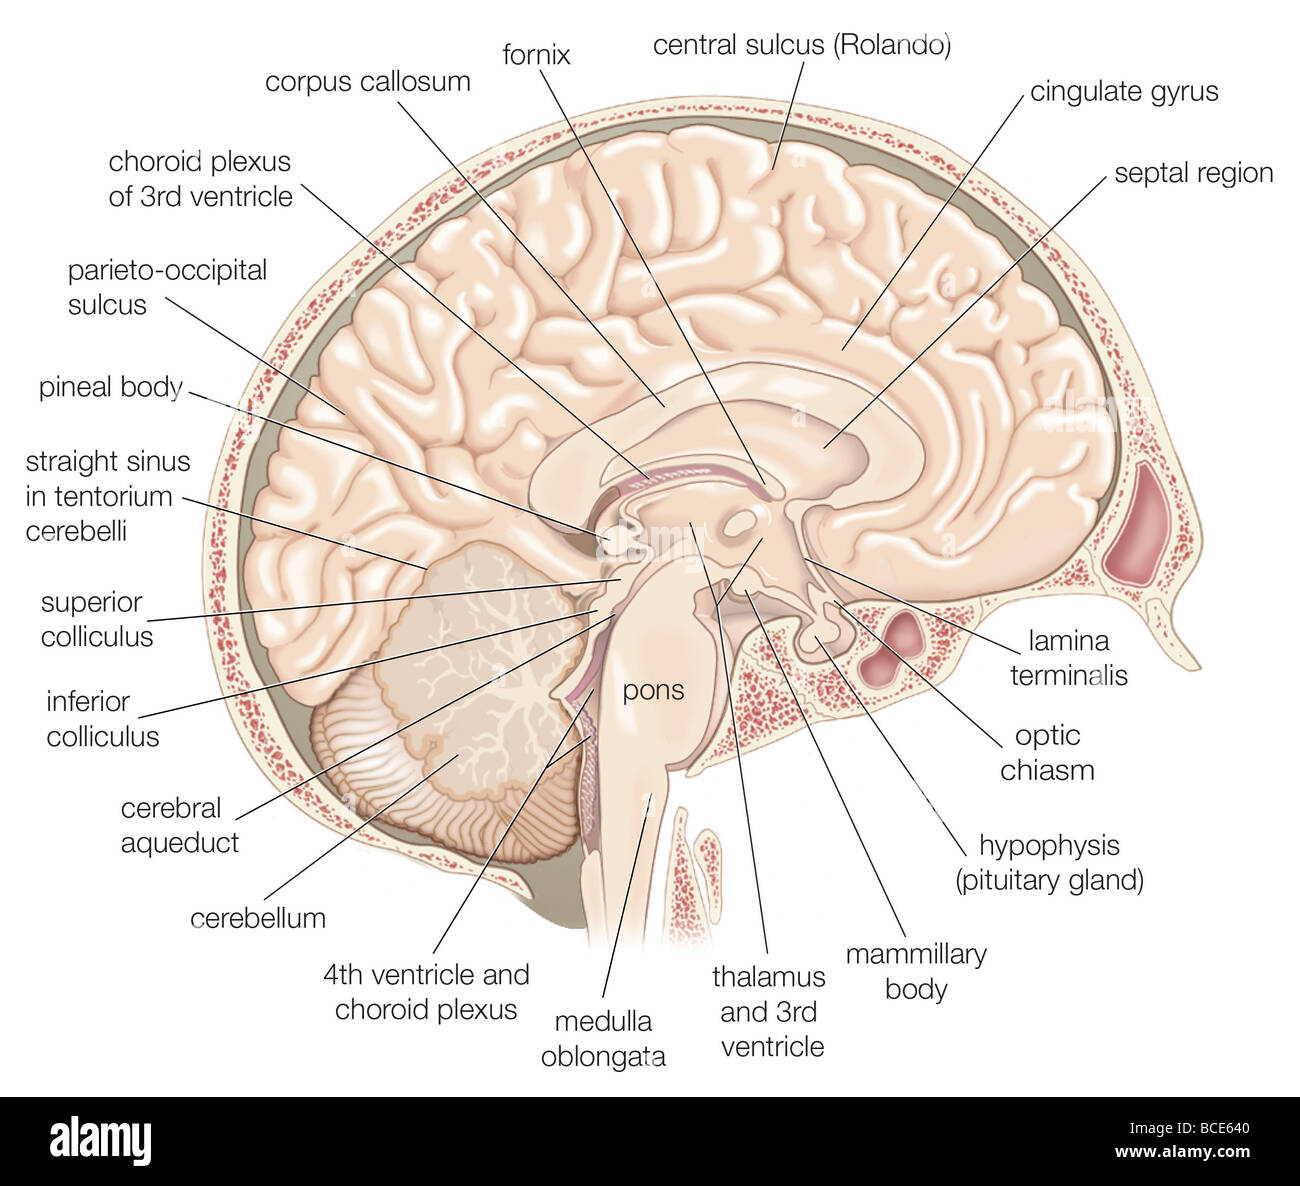 Cingulate gyrus stock photos cingulate gyrus stock images alamy medial view of the left hemisphere of the human brain stock image ccuart Image collections